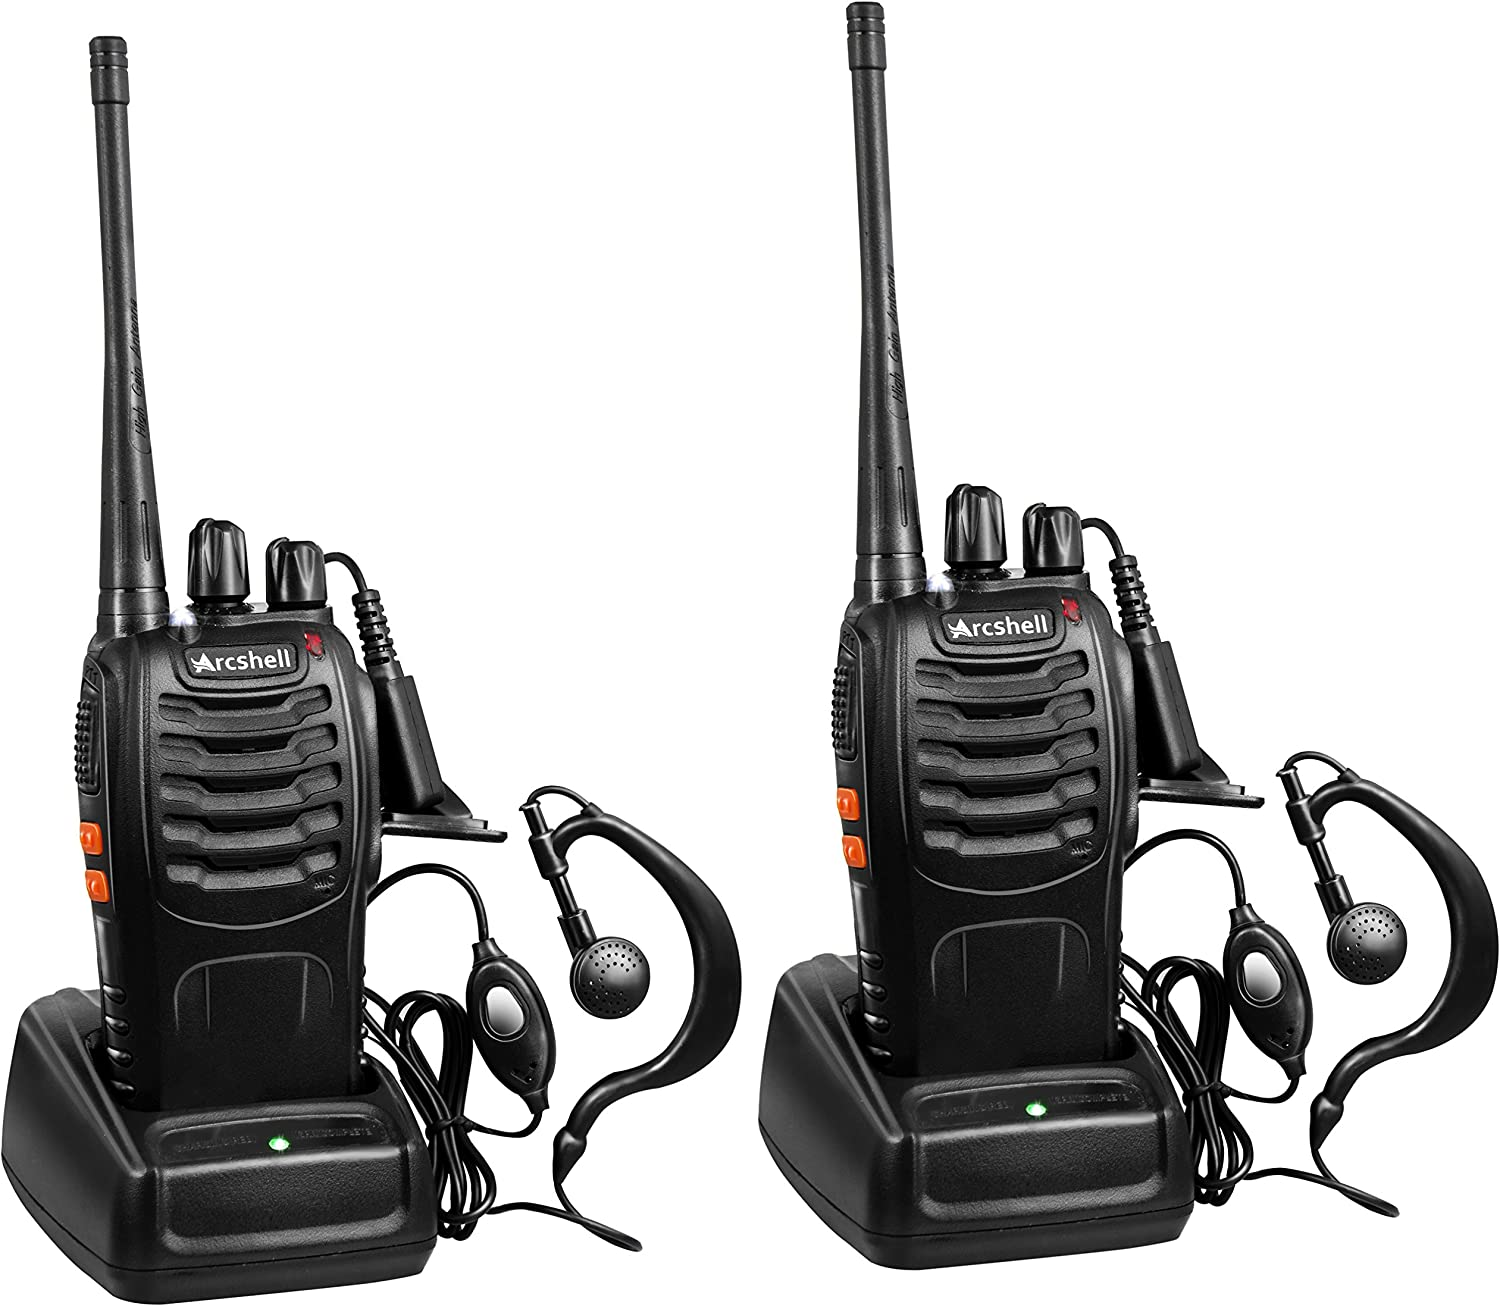 Arcshell Rechargeable Long Range Two-Way Radios with Earpiece 2 Pack UHF 400-470Mhz Walkie Talkies Li-ion Battery and Charger Included: GPS & Navigation